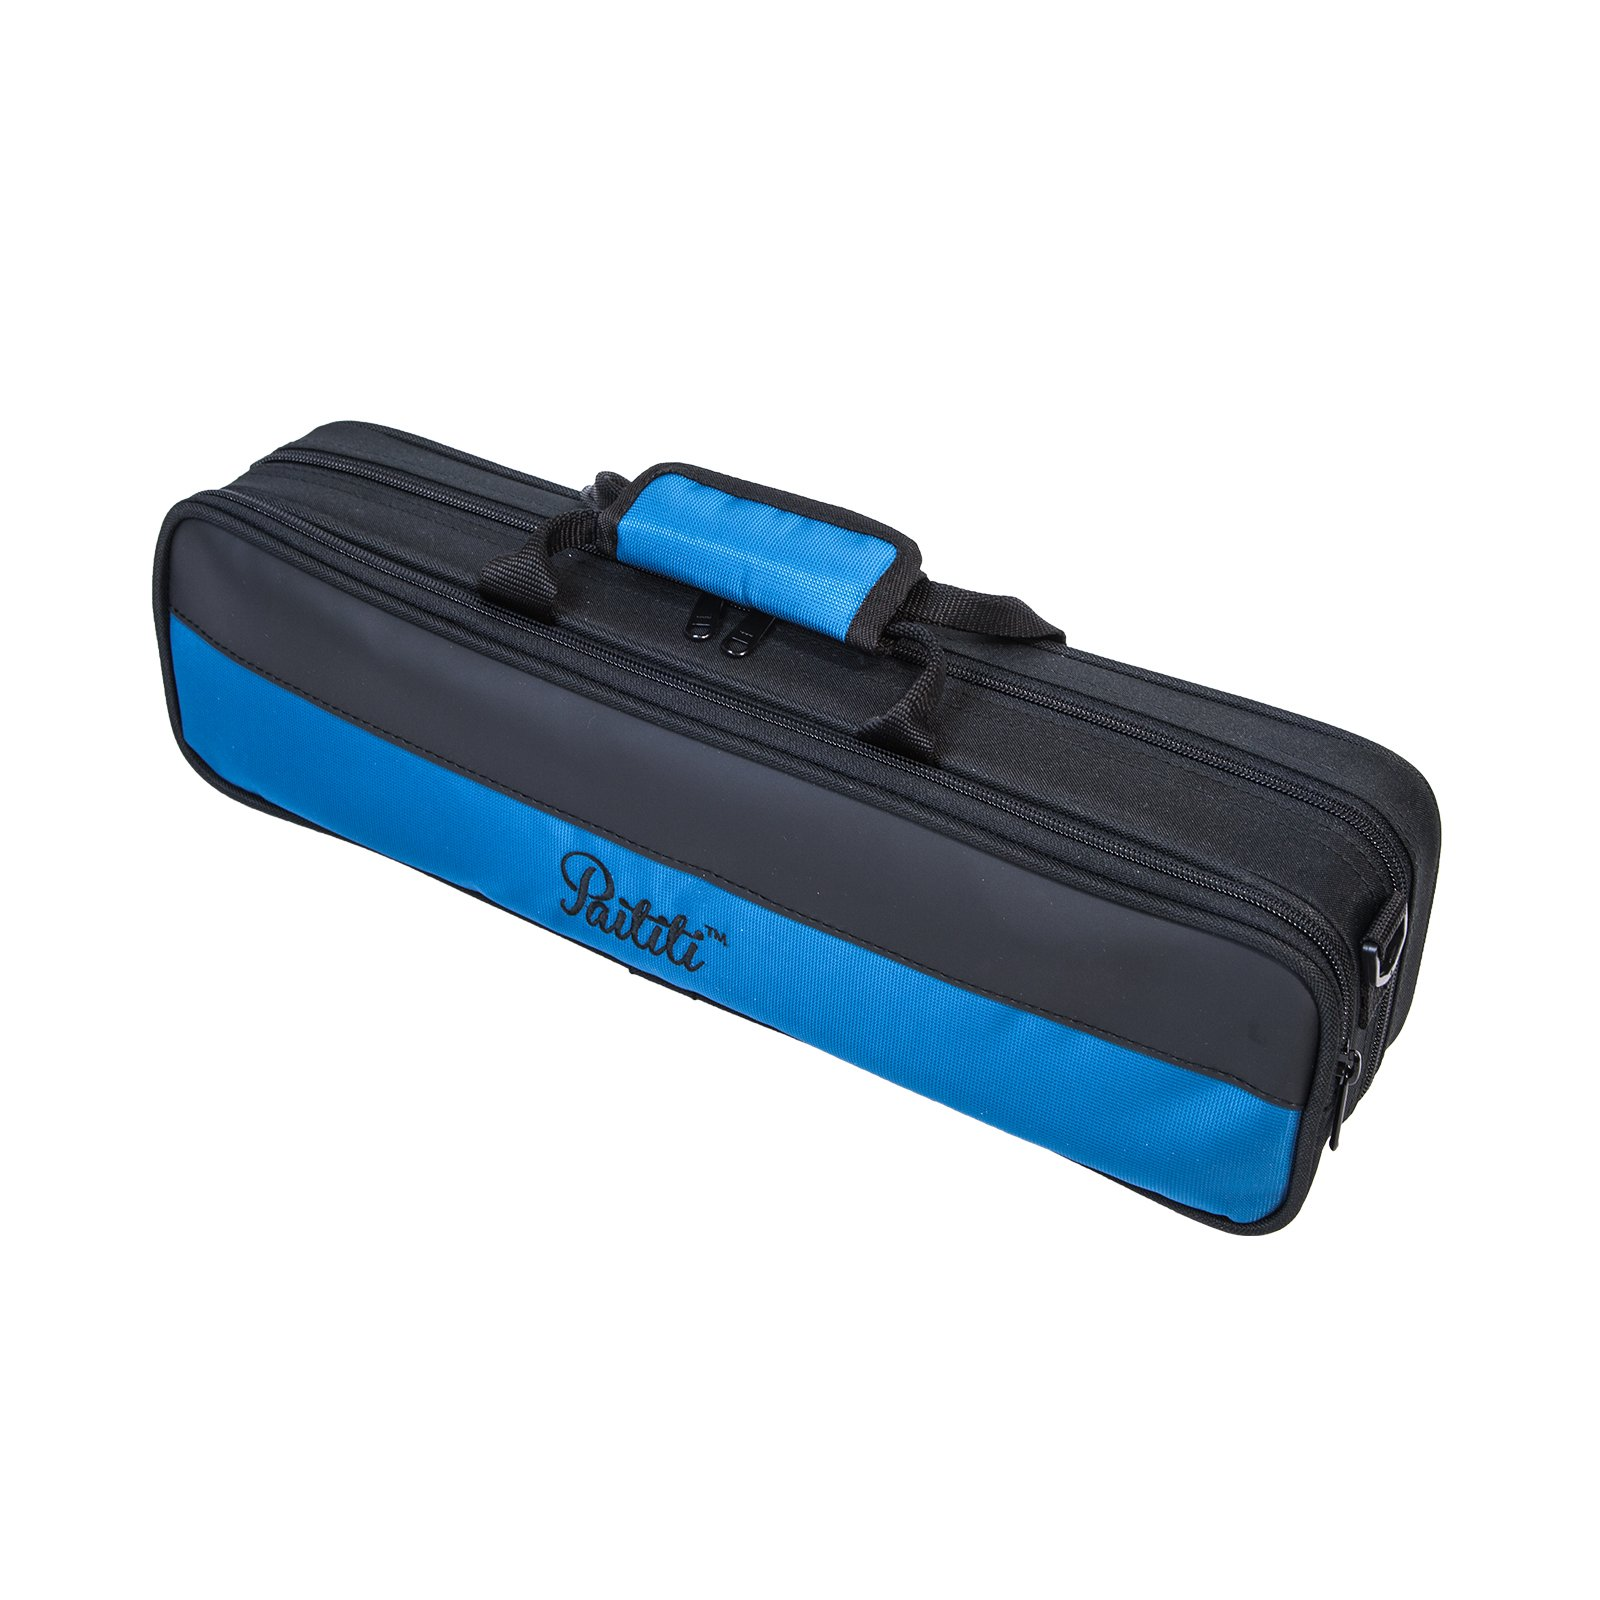 Paititi Lightweight B foot Flute Case with Detachable Shoulder Strap, Large